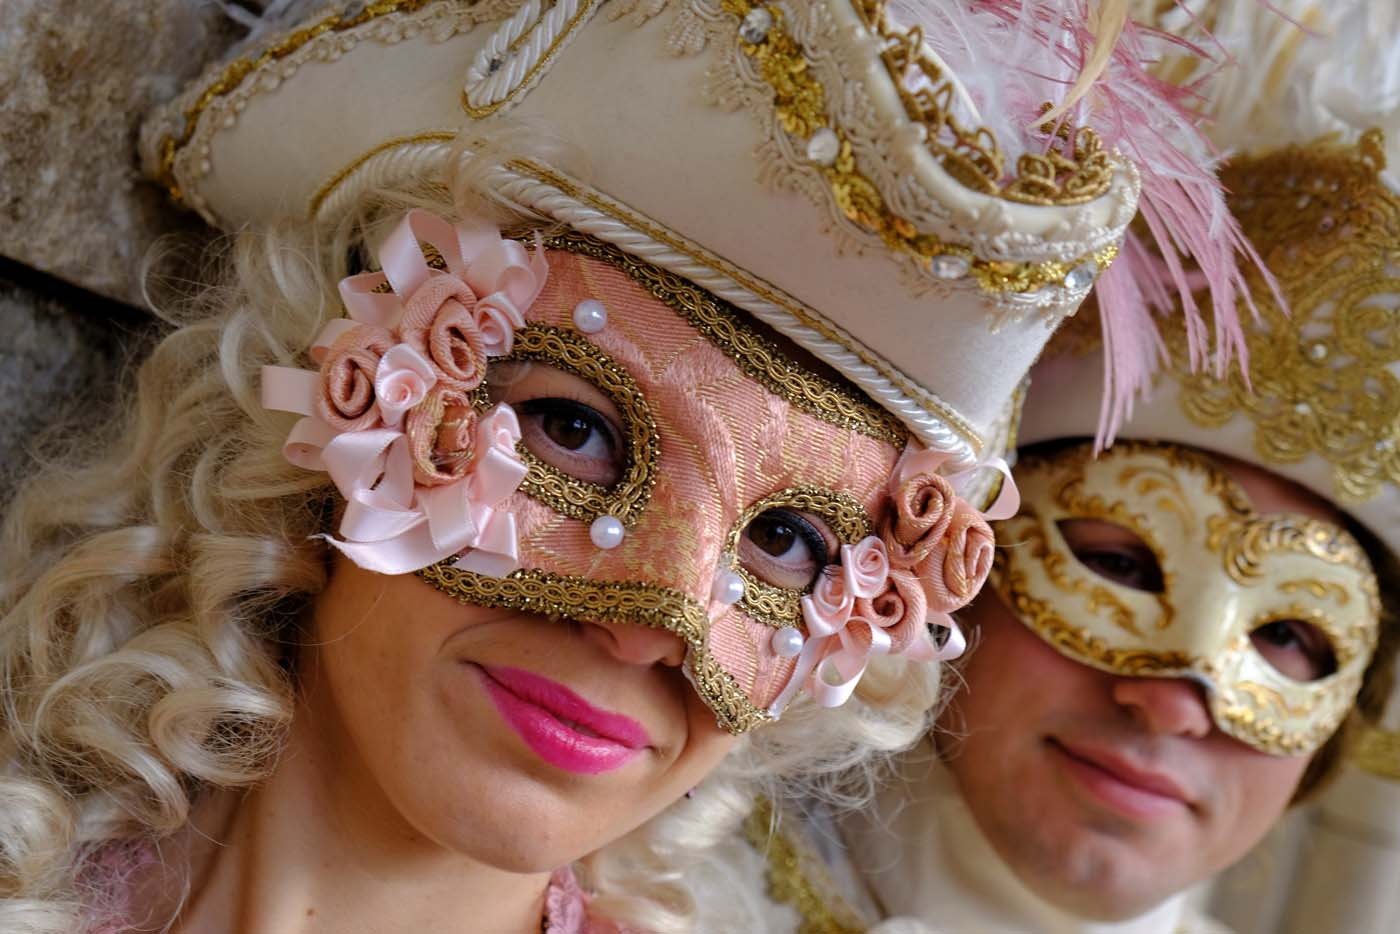 Masked revellers pose during the Carnival in Venice, Italy January 28, 2018. REUTERS/Manuel Silvestri